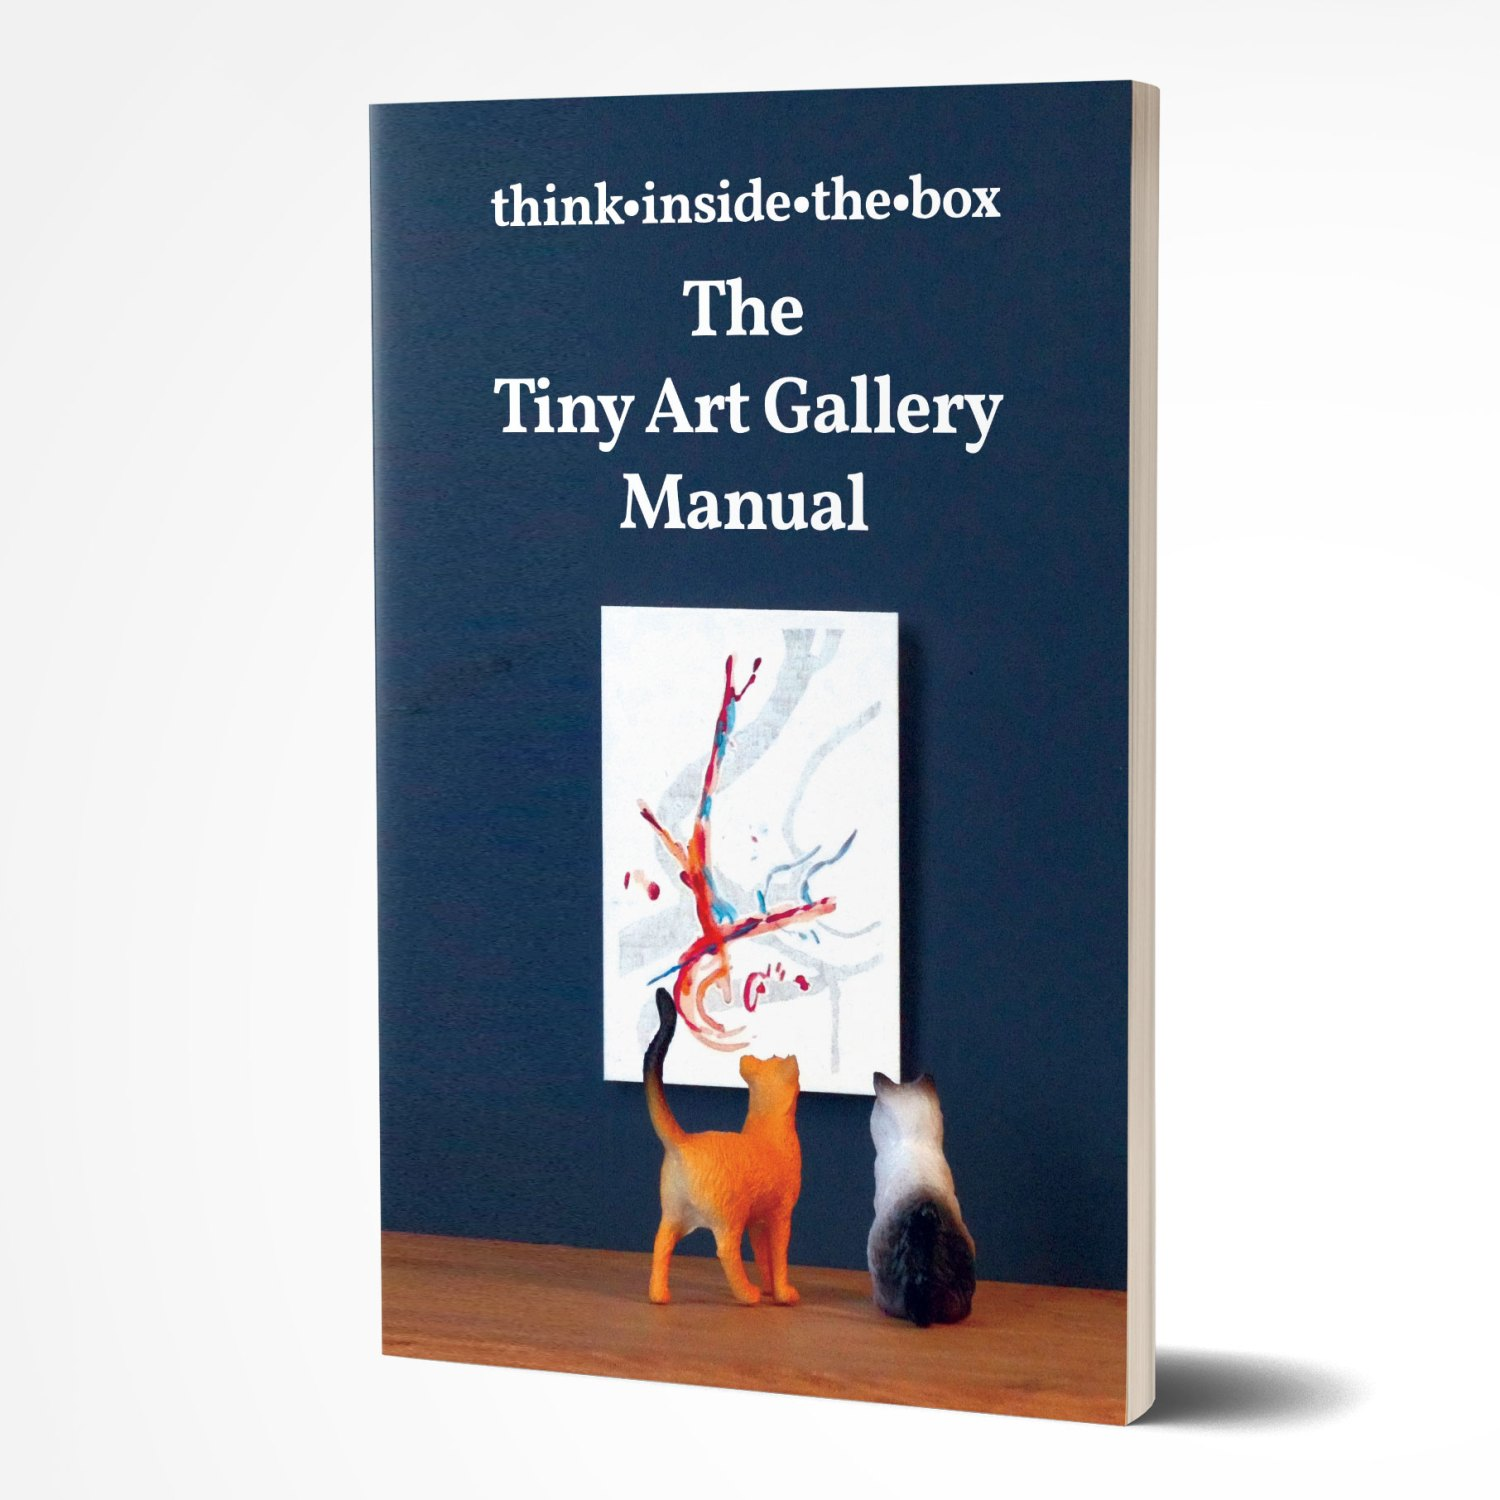 a small book about running a small gallery buy at Amazon